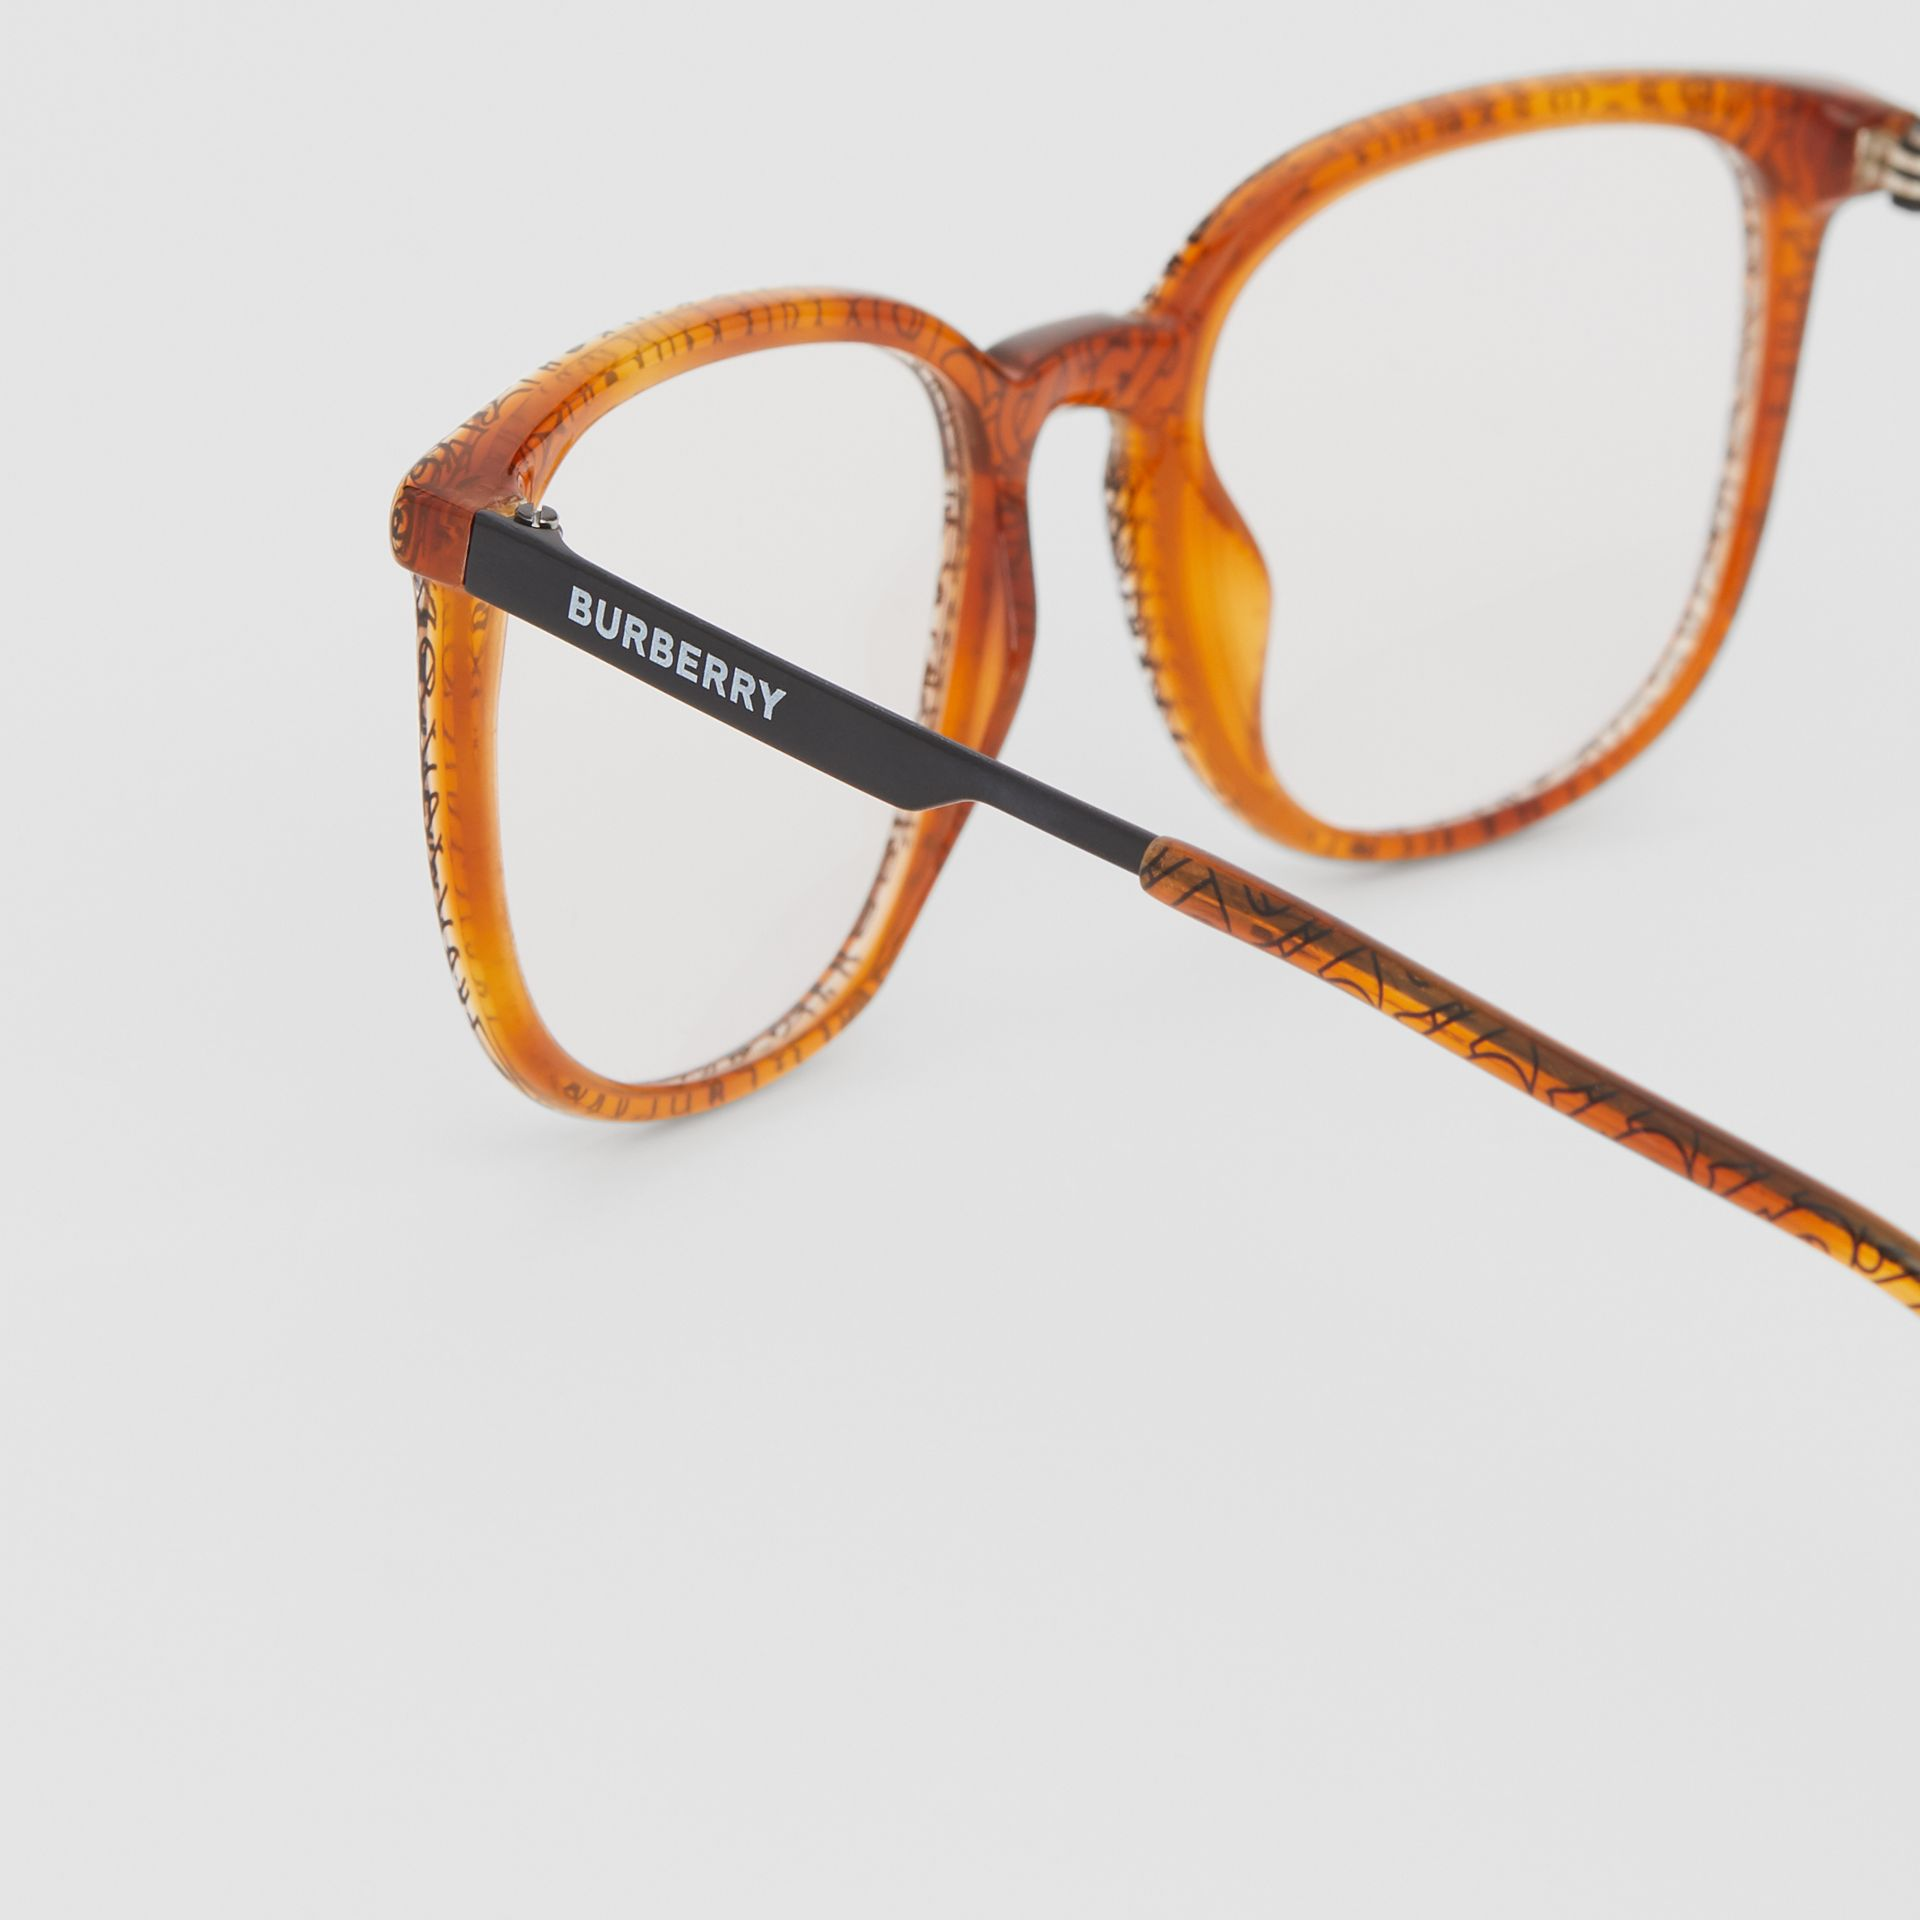 Monogram Print Square Optical Frames in Tortoiseshell Amber | Burberry - gallery image 1